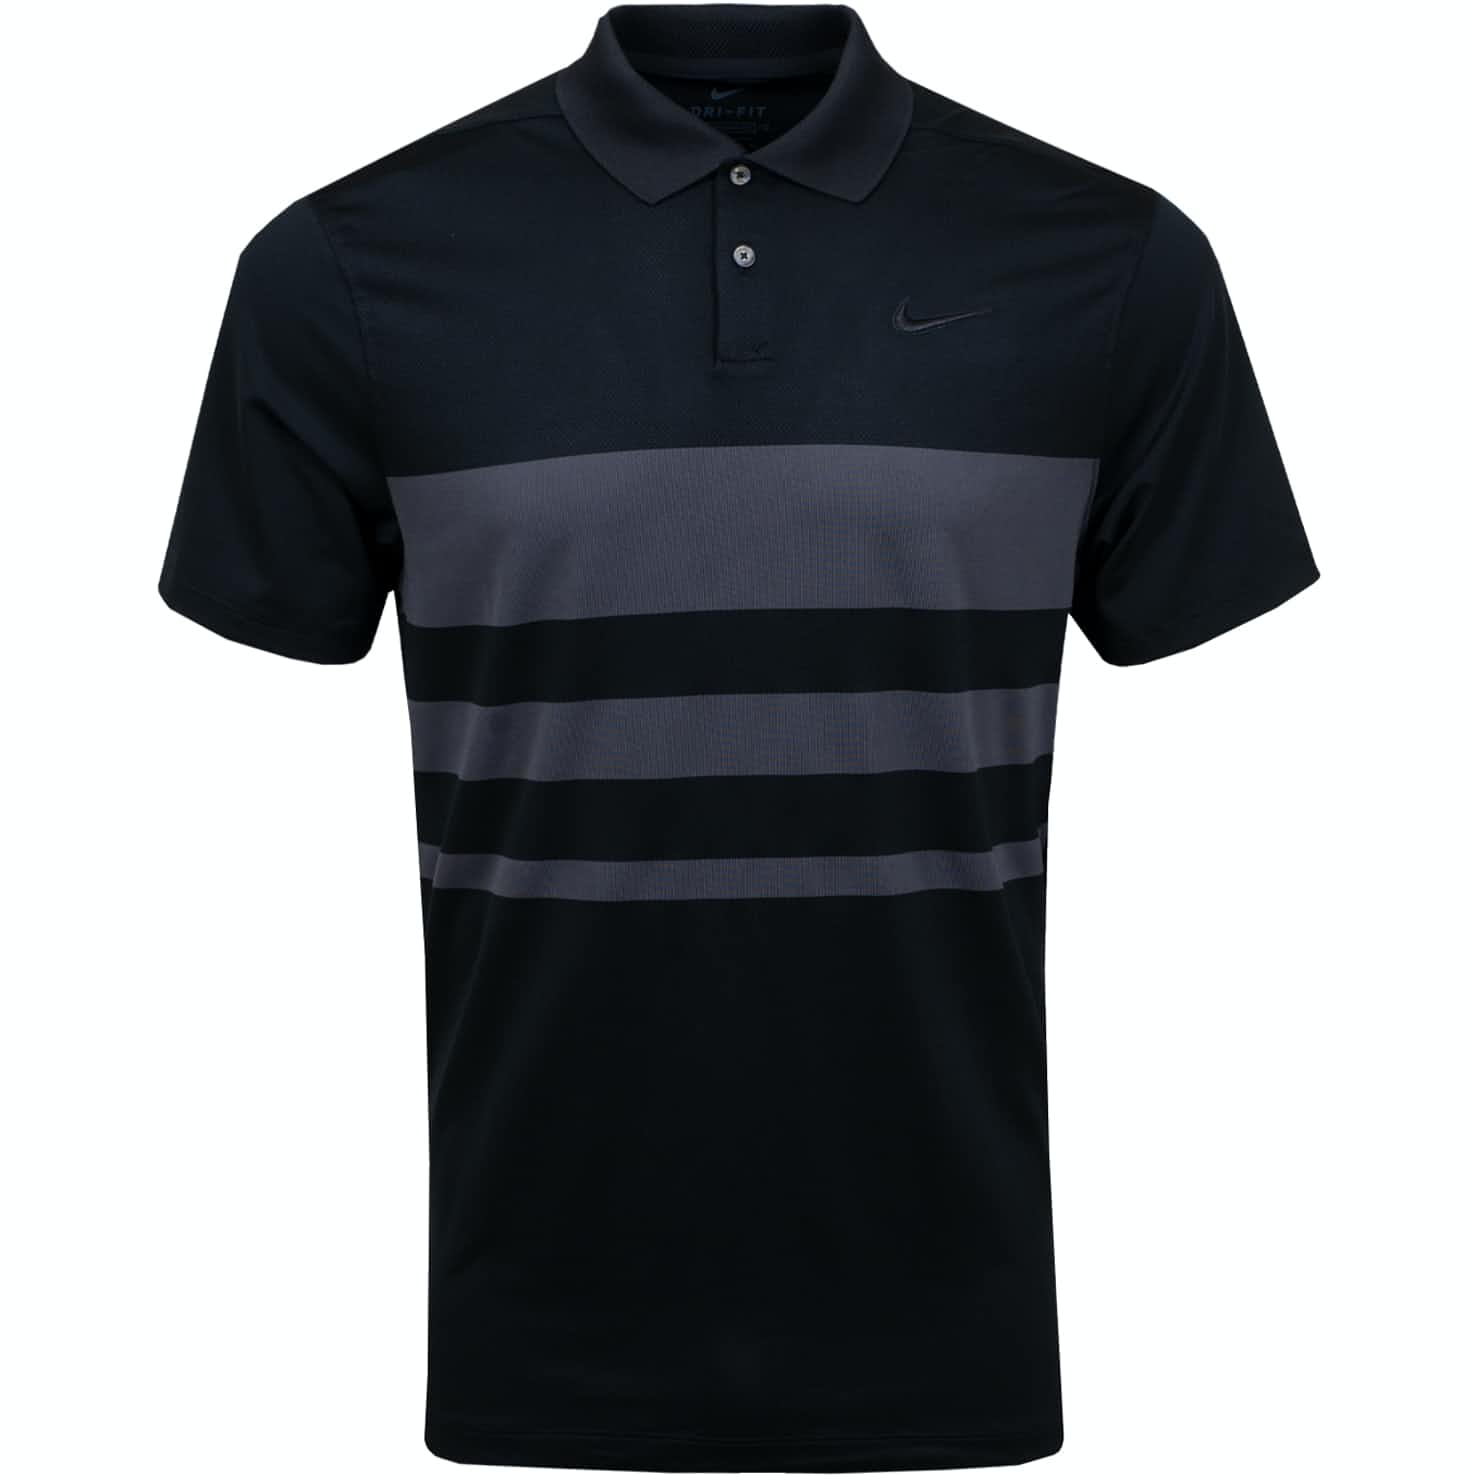 Dry Vapor Stripe Polo Black - SS20